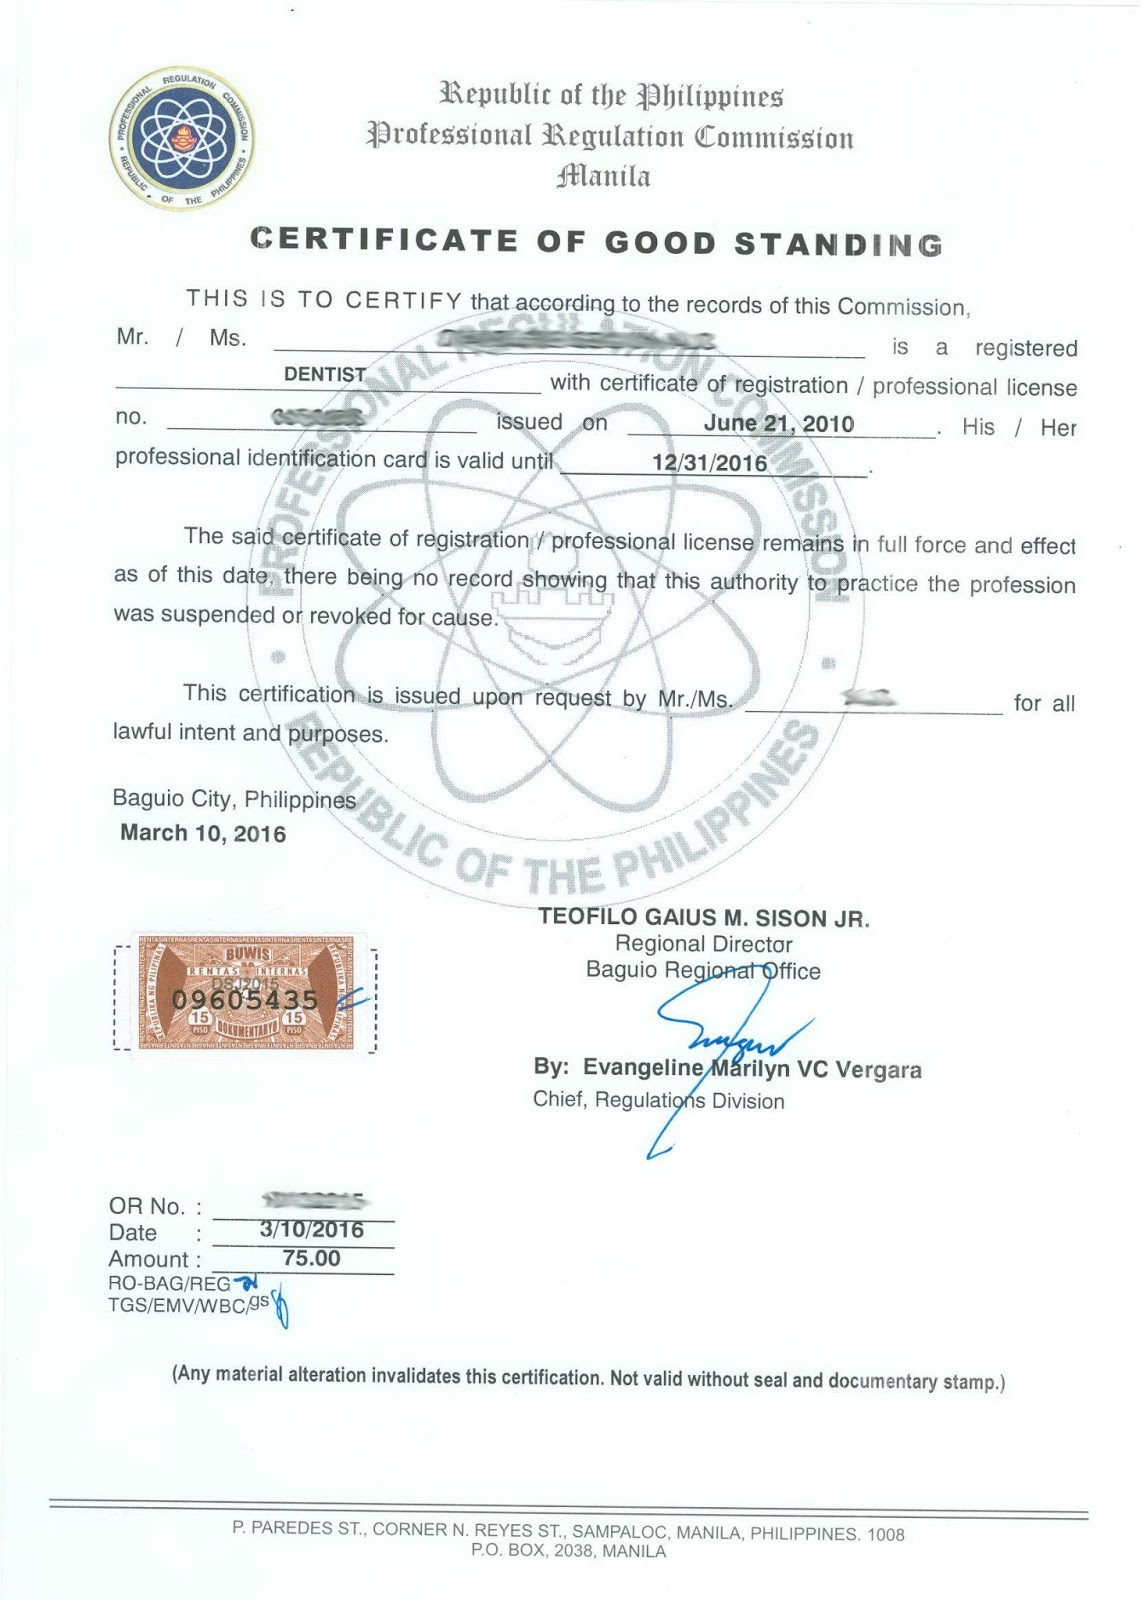 Prc baguio information site certification and authentication certificate of good standing cgs yelopaper Image collections